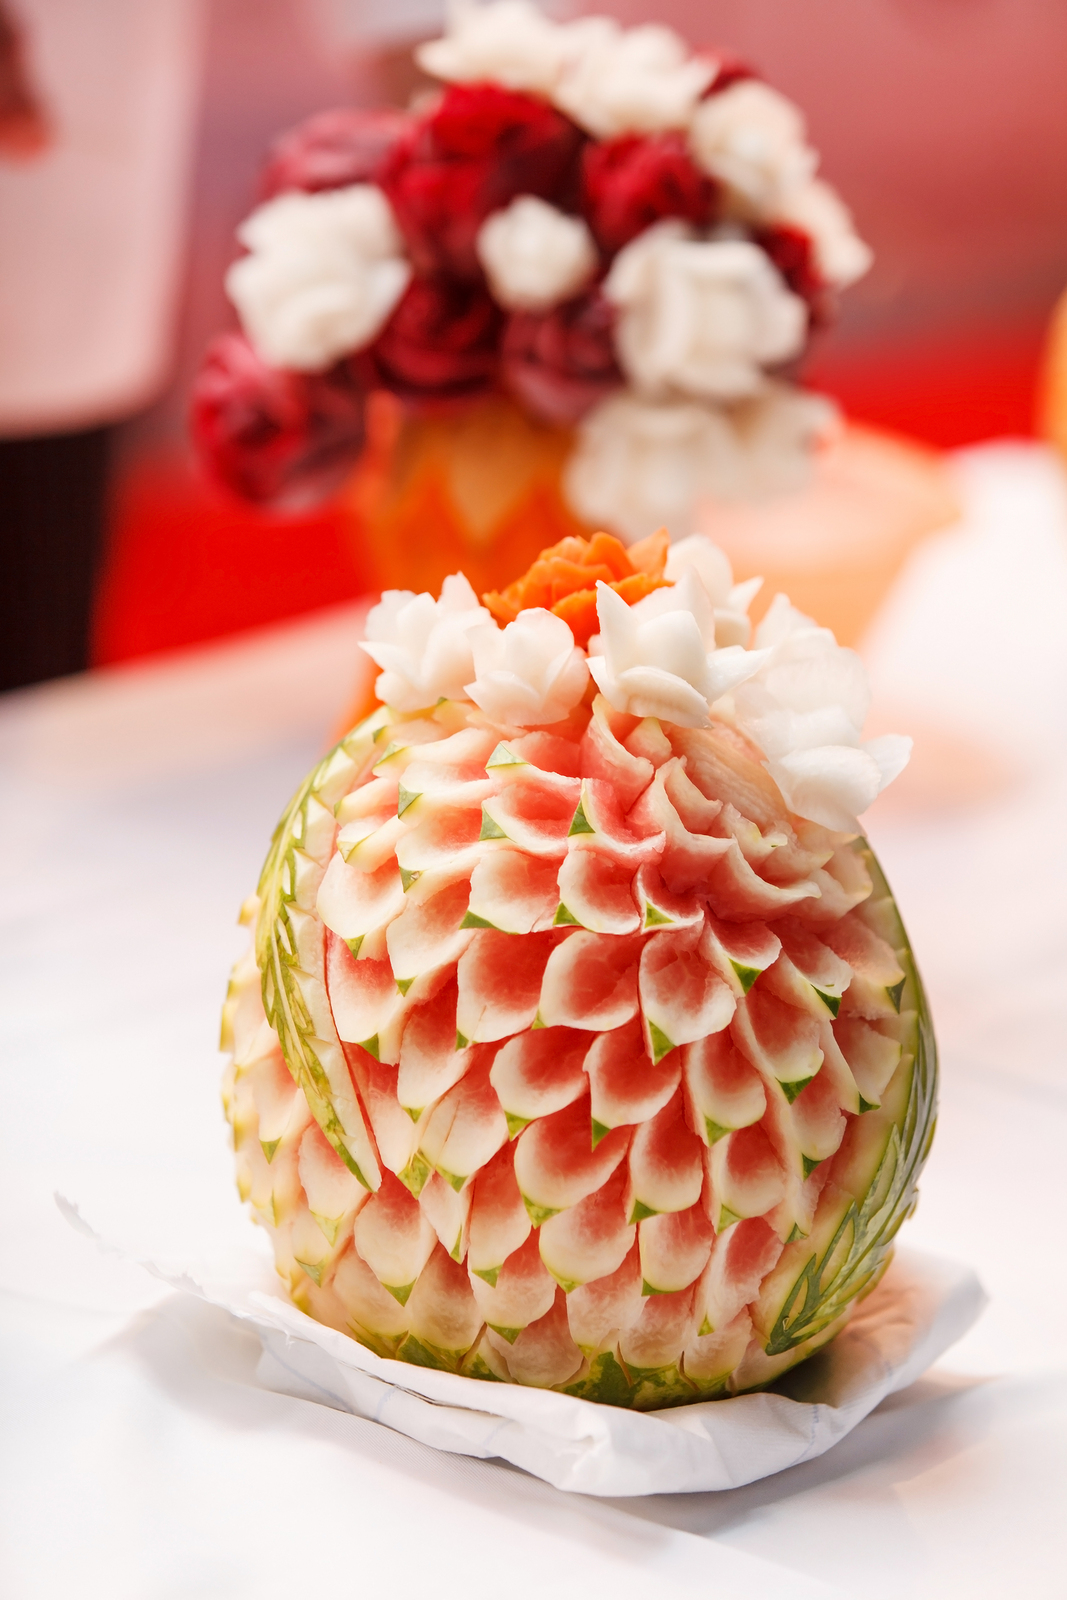 Watermelon i fruit carving